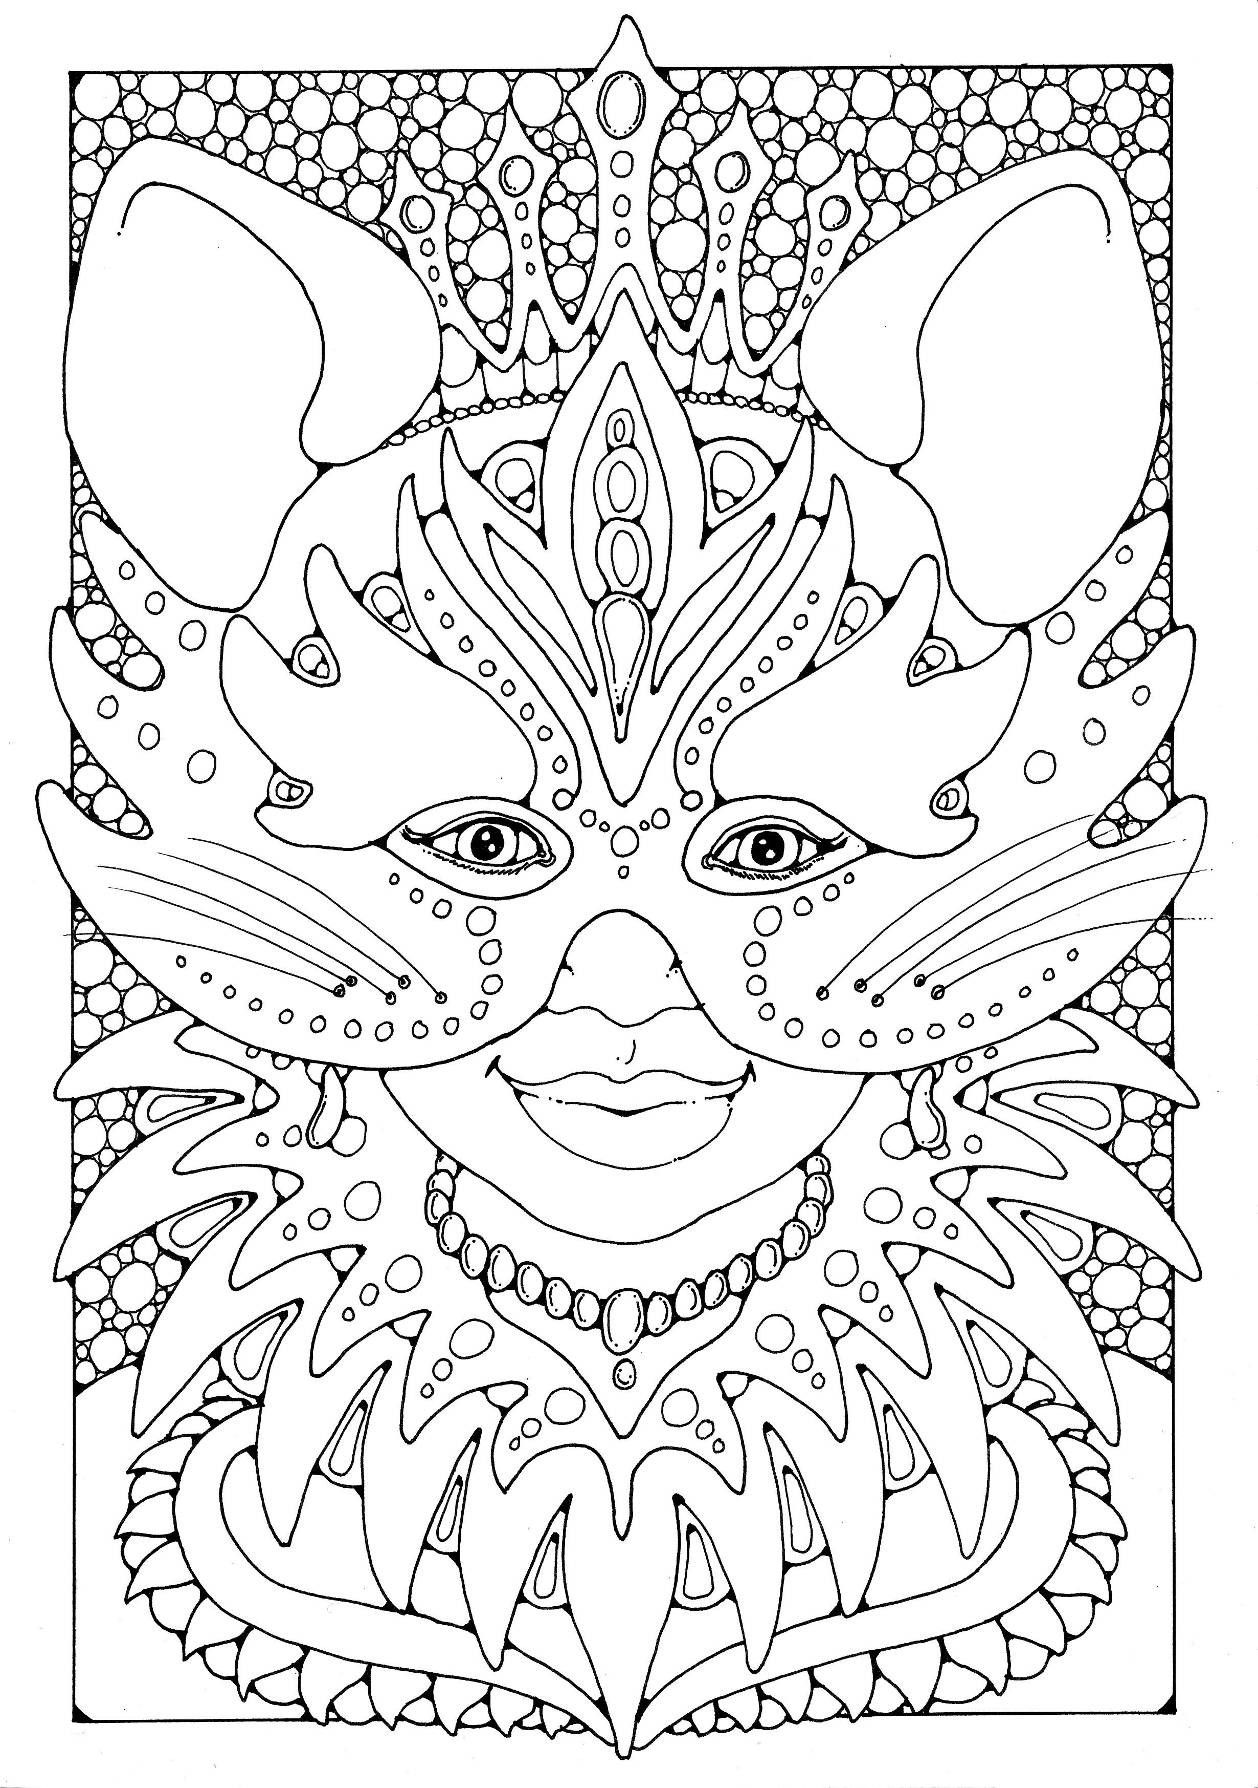 Carnival Coloring Page By Dandi Palmer Coloring Pages Dragon Coloring Page Insect Coloring Pages